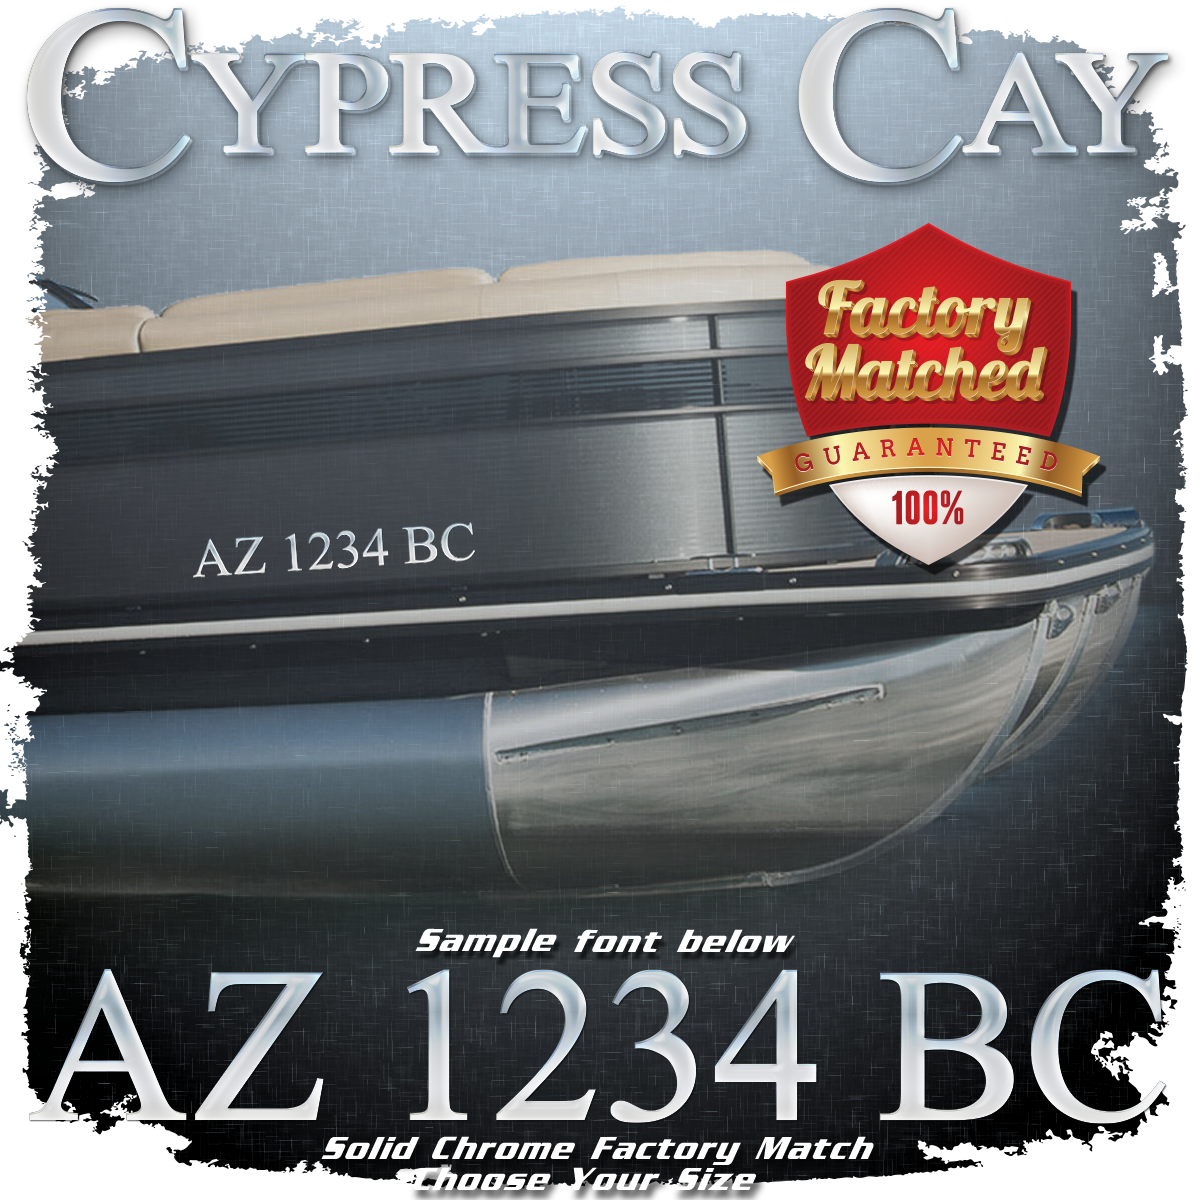 Cypress Cay Registration (2 included), Factory Matched Chrome